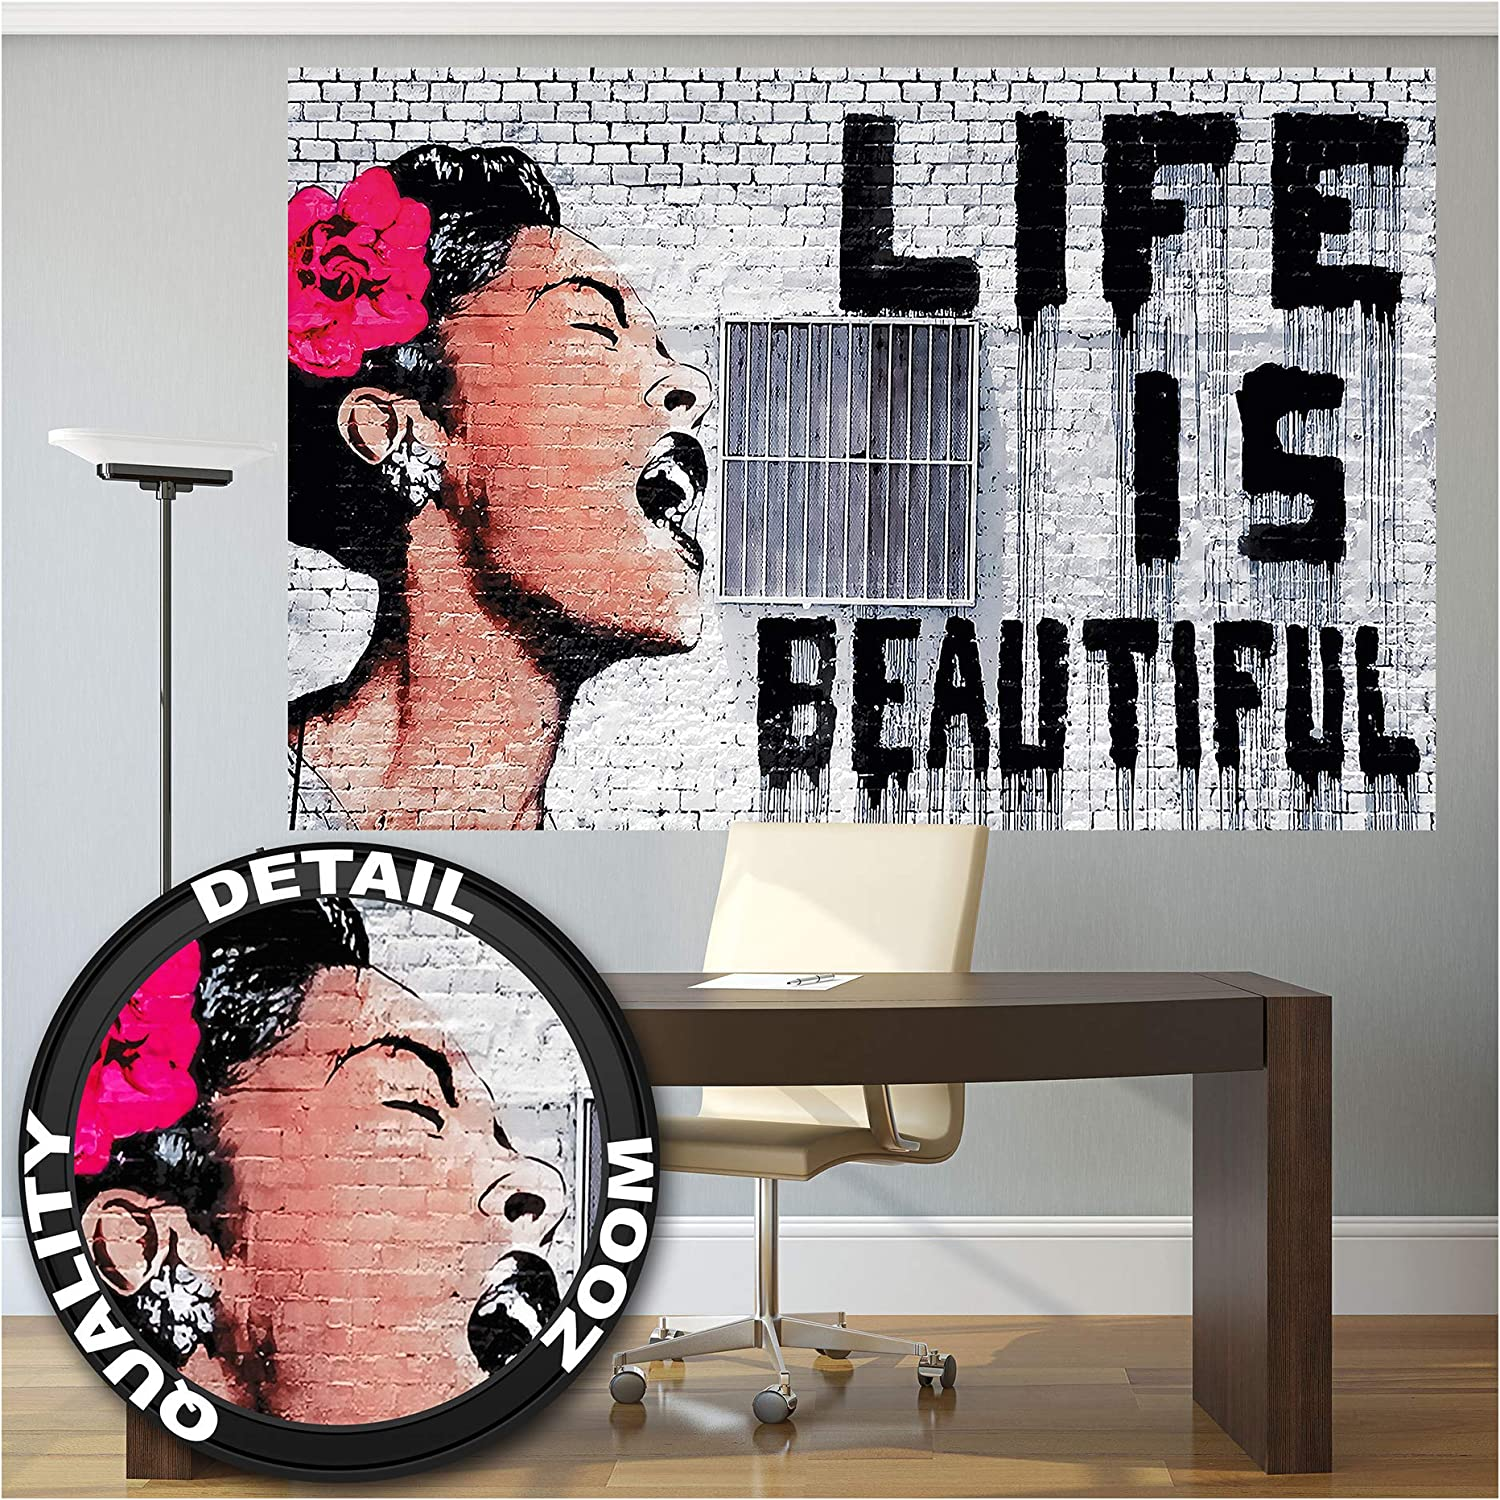 Poster – Banksy Life is Beautiful – Picture Decoration Graffiti Pop Art Urban Street Style Billie Holiday Artwork Stencil Image Photo Decor Wall Mural (55x39.4in - 140x100cm)